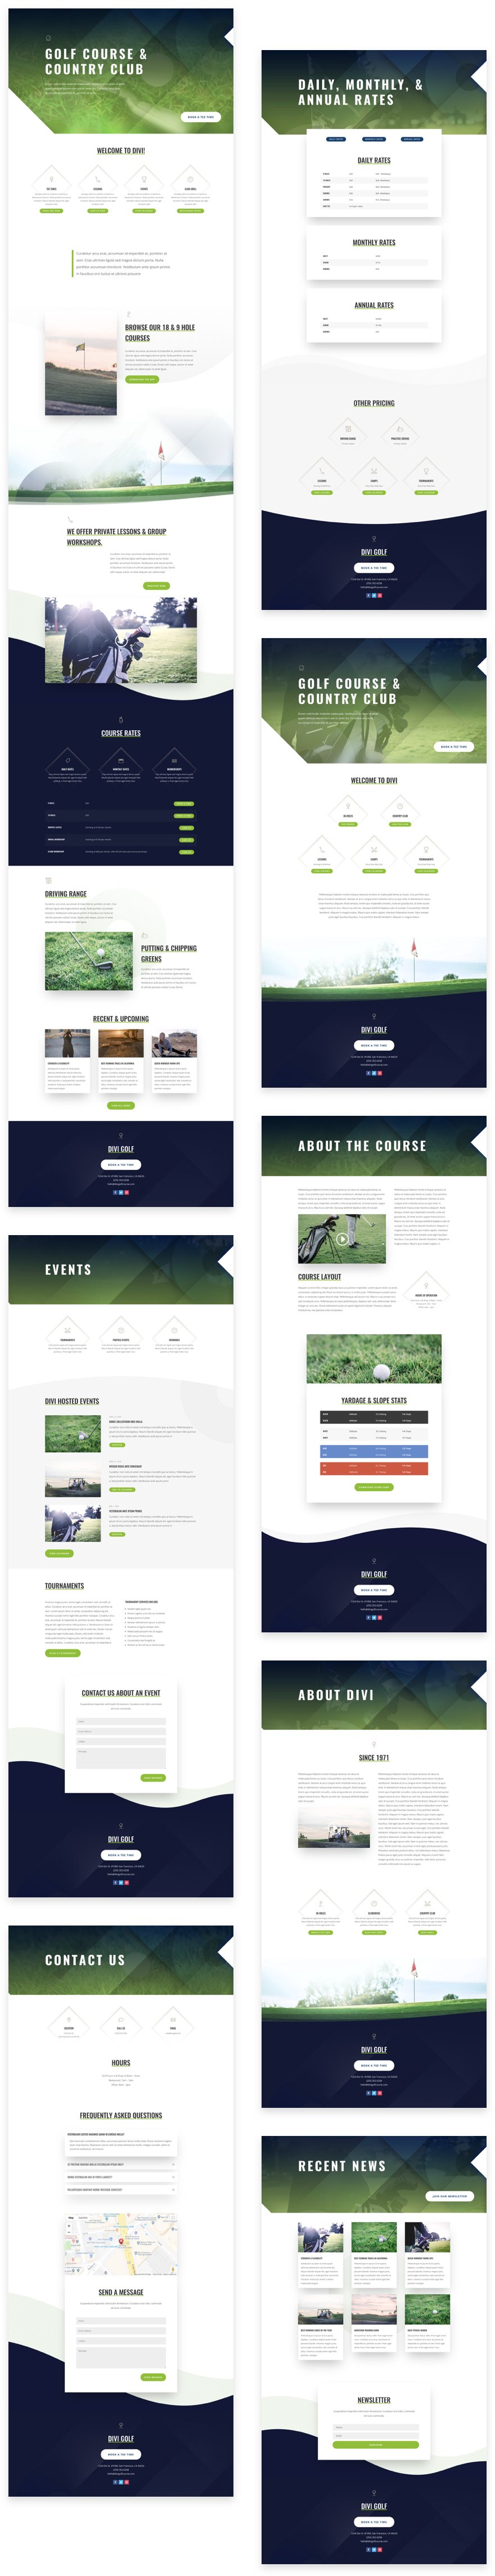 Get a FREE Golf Course Layout Pack for Divi